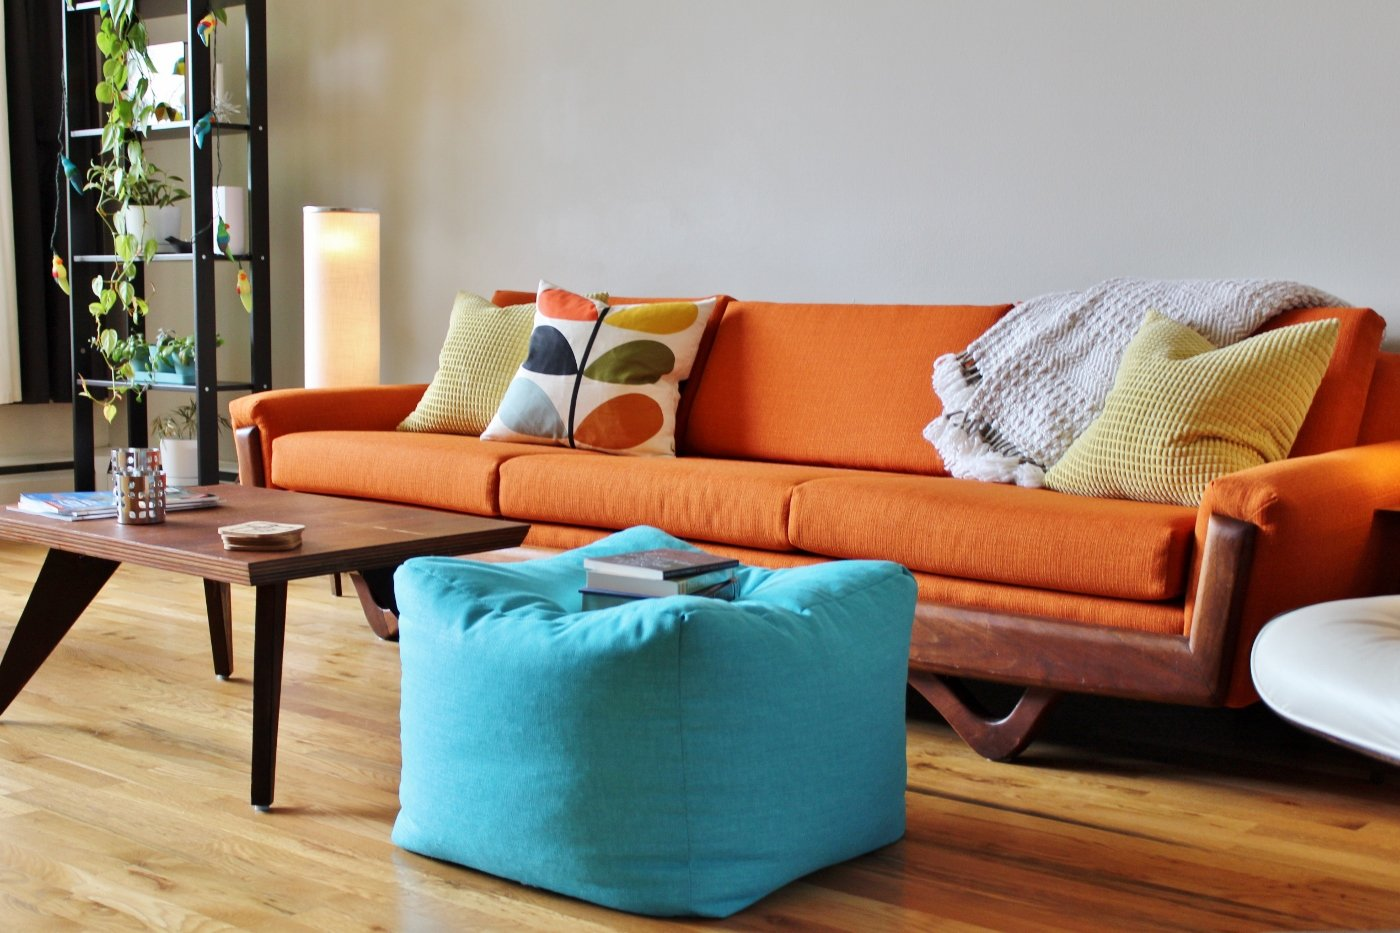 What to Expect When You Have Your Sofa Reupholstered